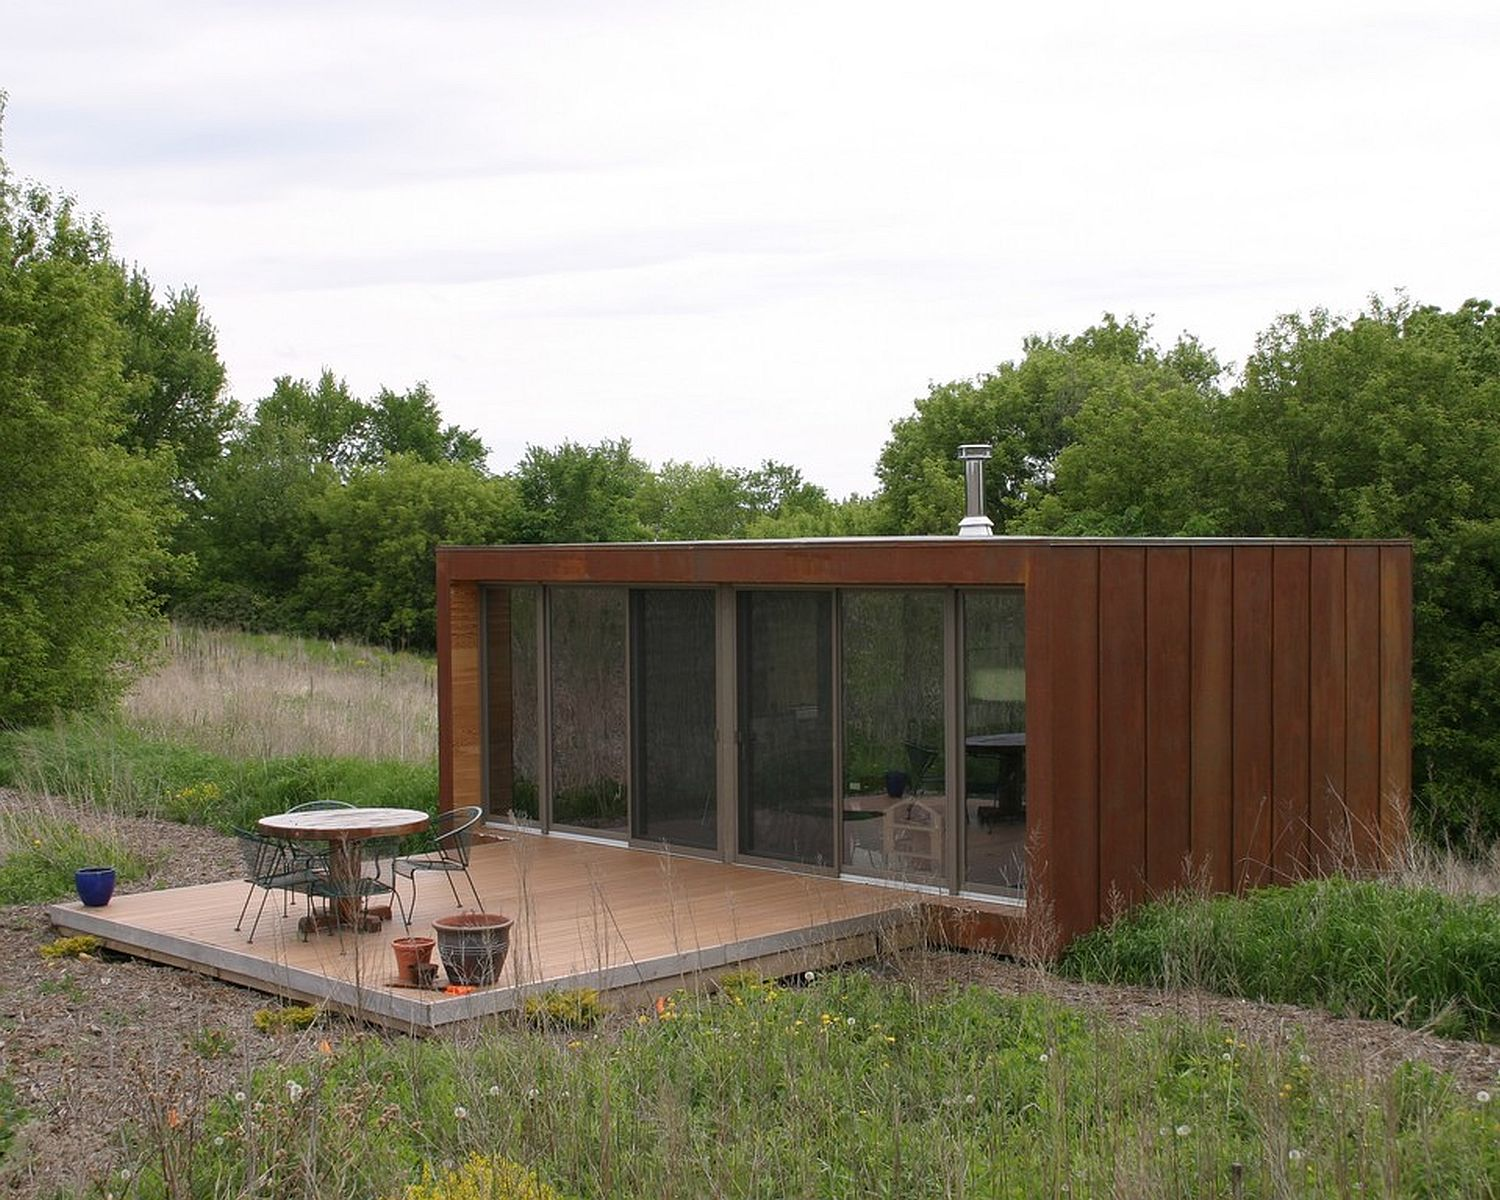 The Arado WeeHouse, A Modern Prefab Cabin With 336 Sq Ft, Was The Original